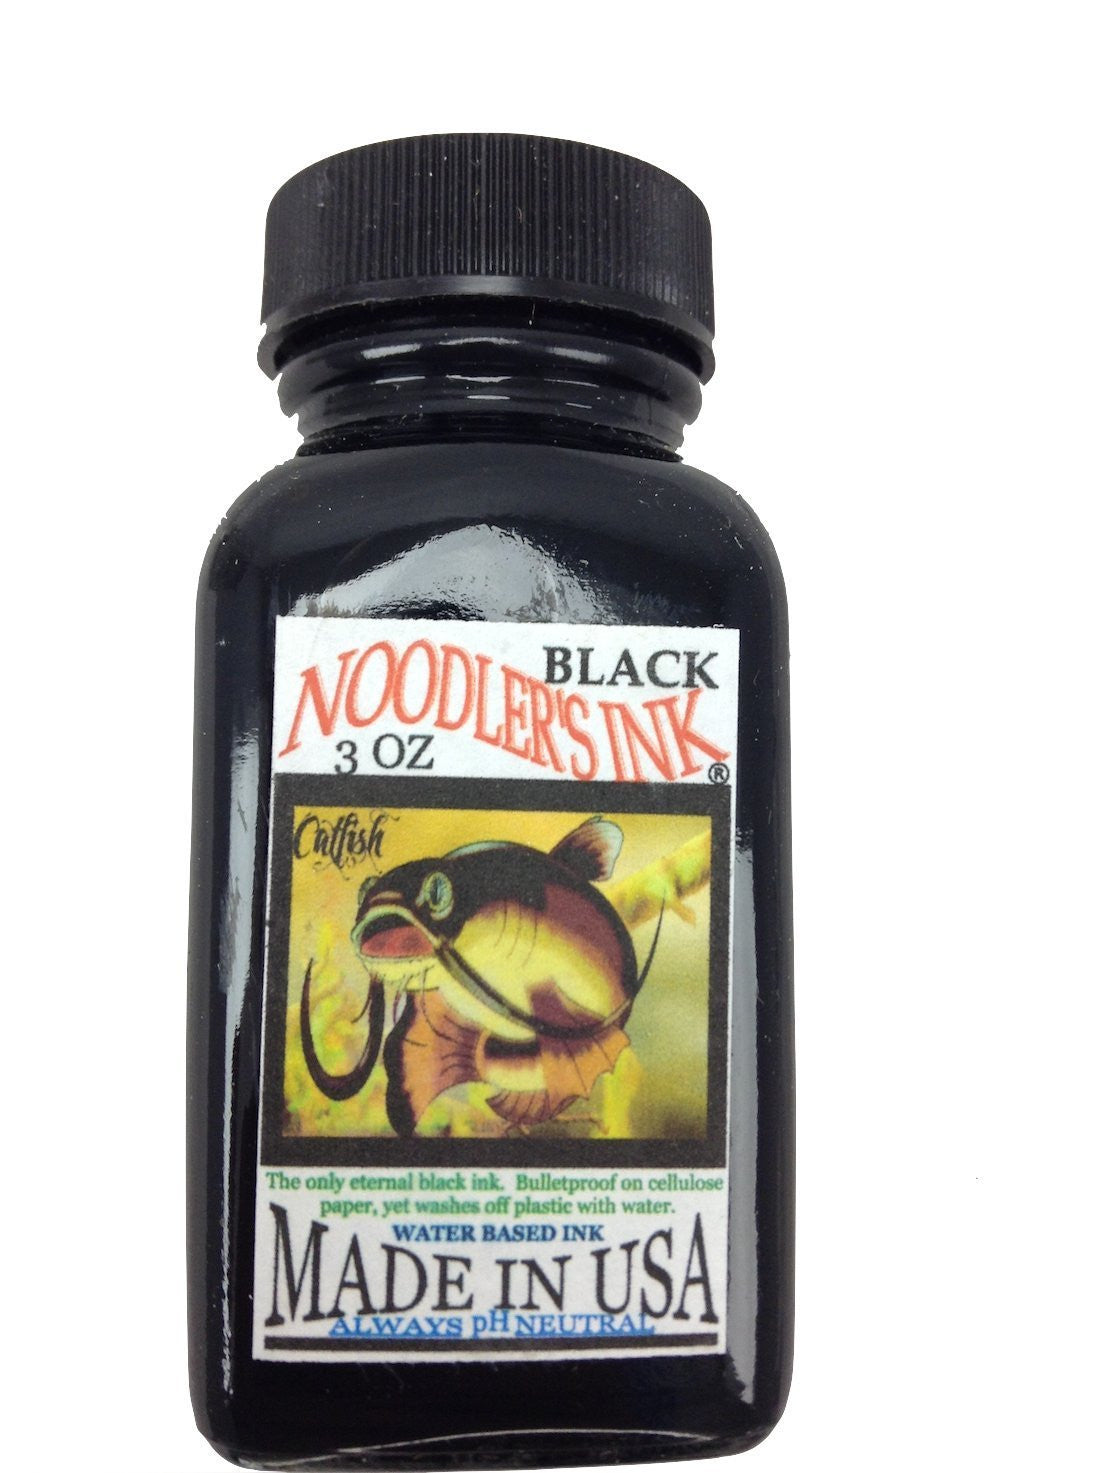 Noodler's Ink Black 3 oz